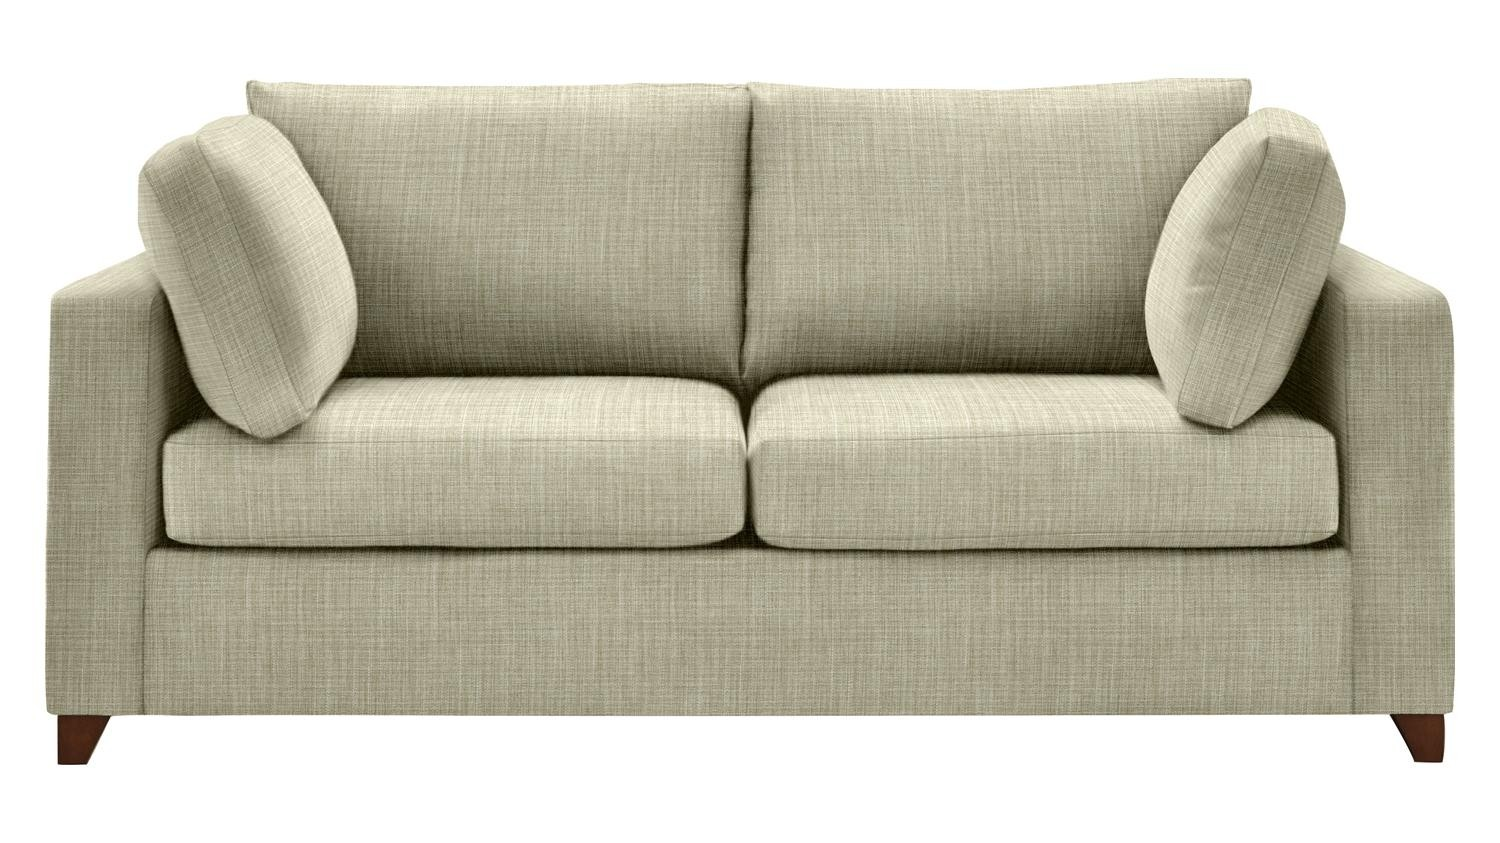 The Somerton 3.5 Seater Sofa Bed